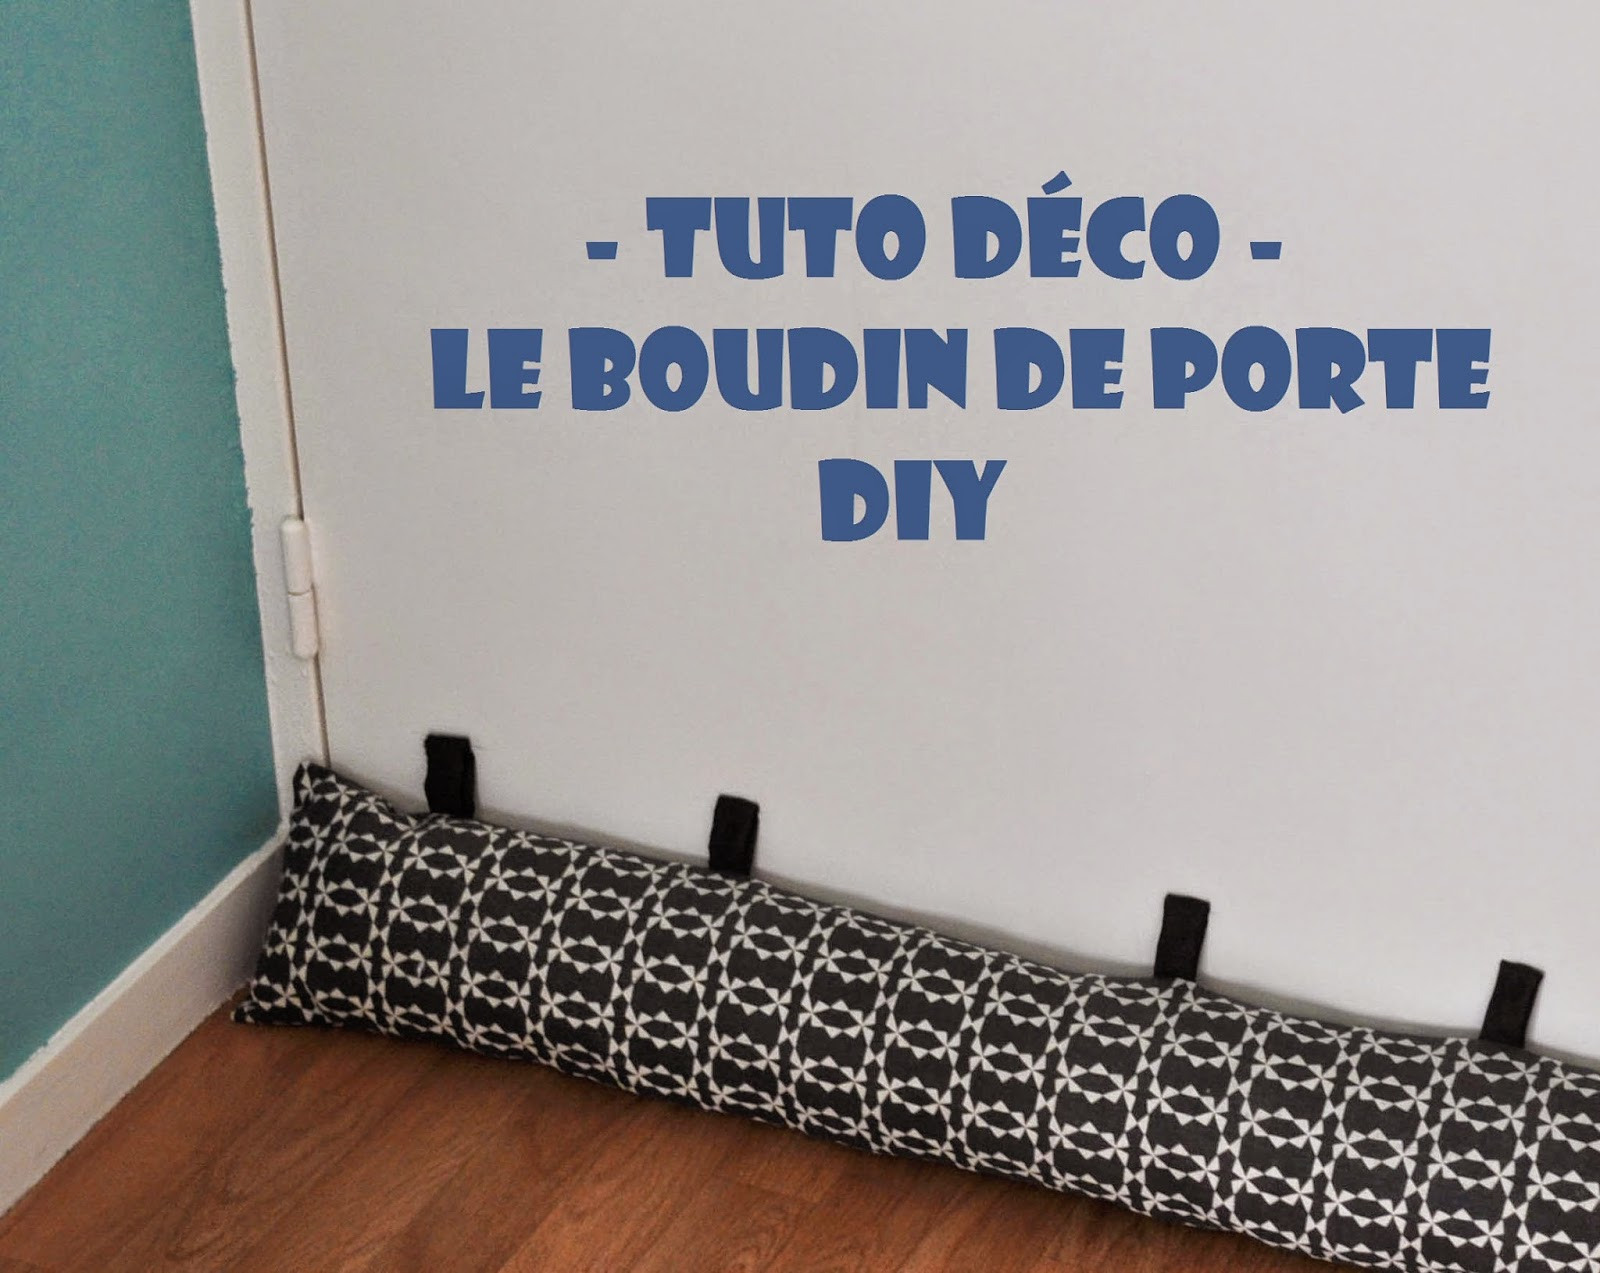 Funky sunday halte aux courants d 39 air le boudin de porte diy for Boudin de porte ikea